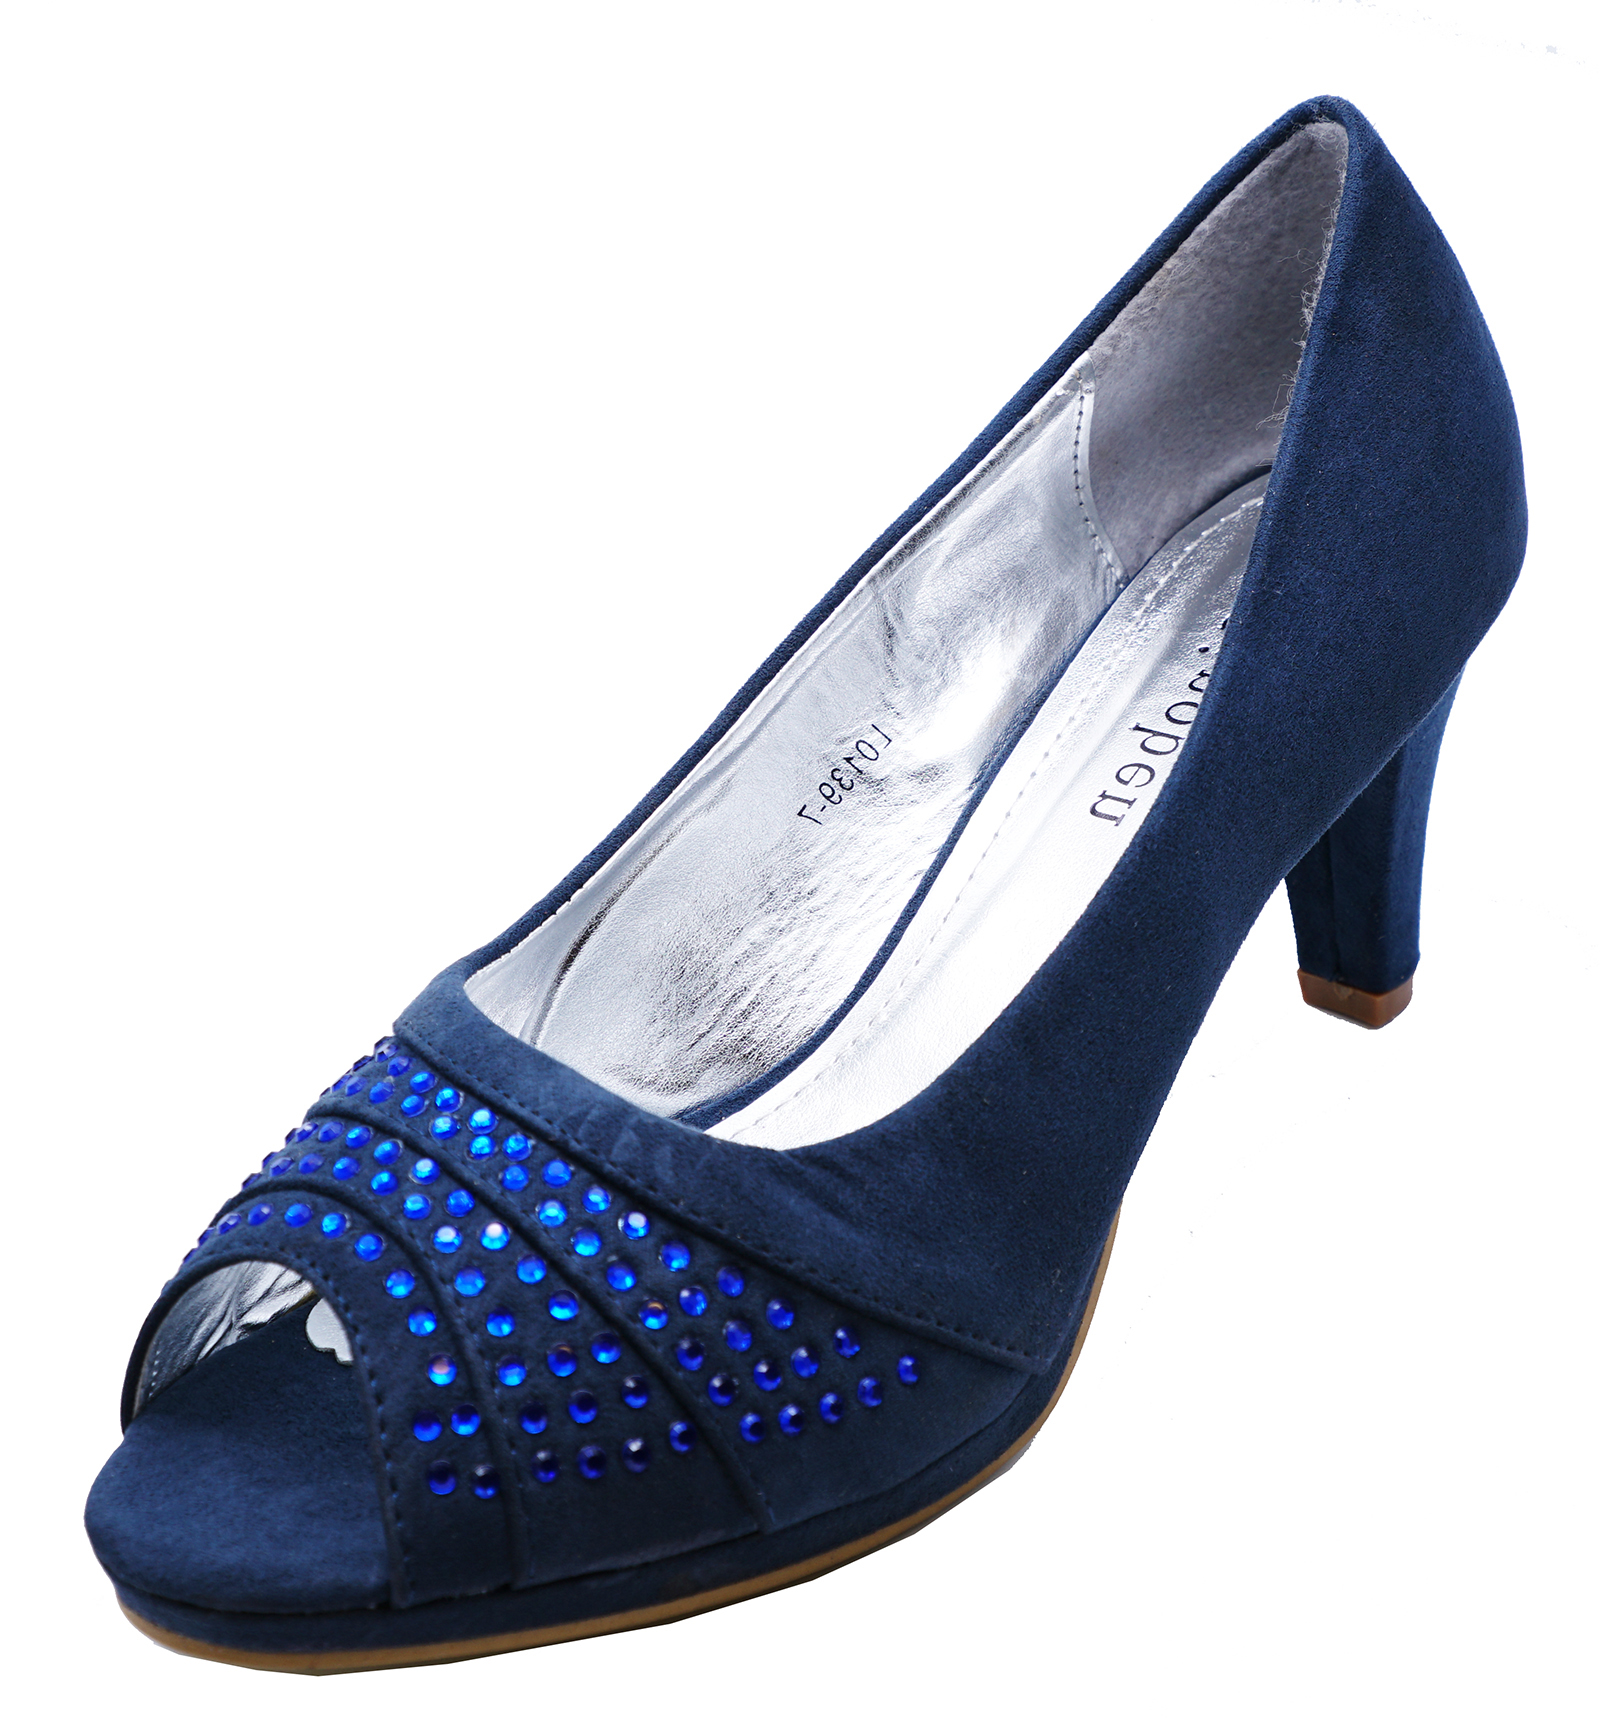 180c7b4f7 Sentinel WOMENS NAVY DIAMANTE COMFY OPEN-TOE SLIP-ON SMART COURT WORK SHOES  SIZES 3